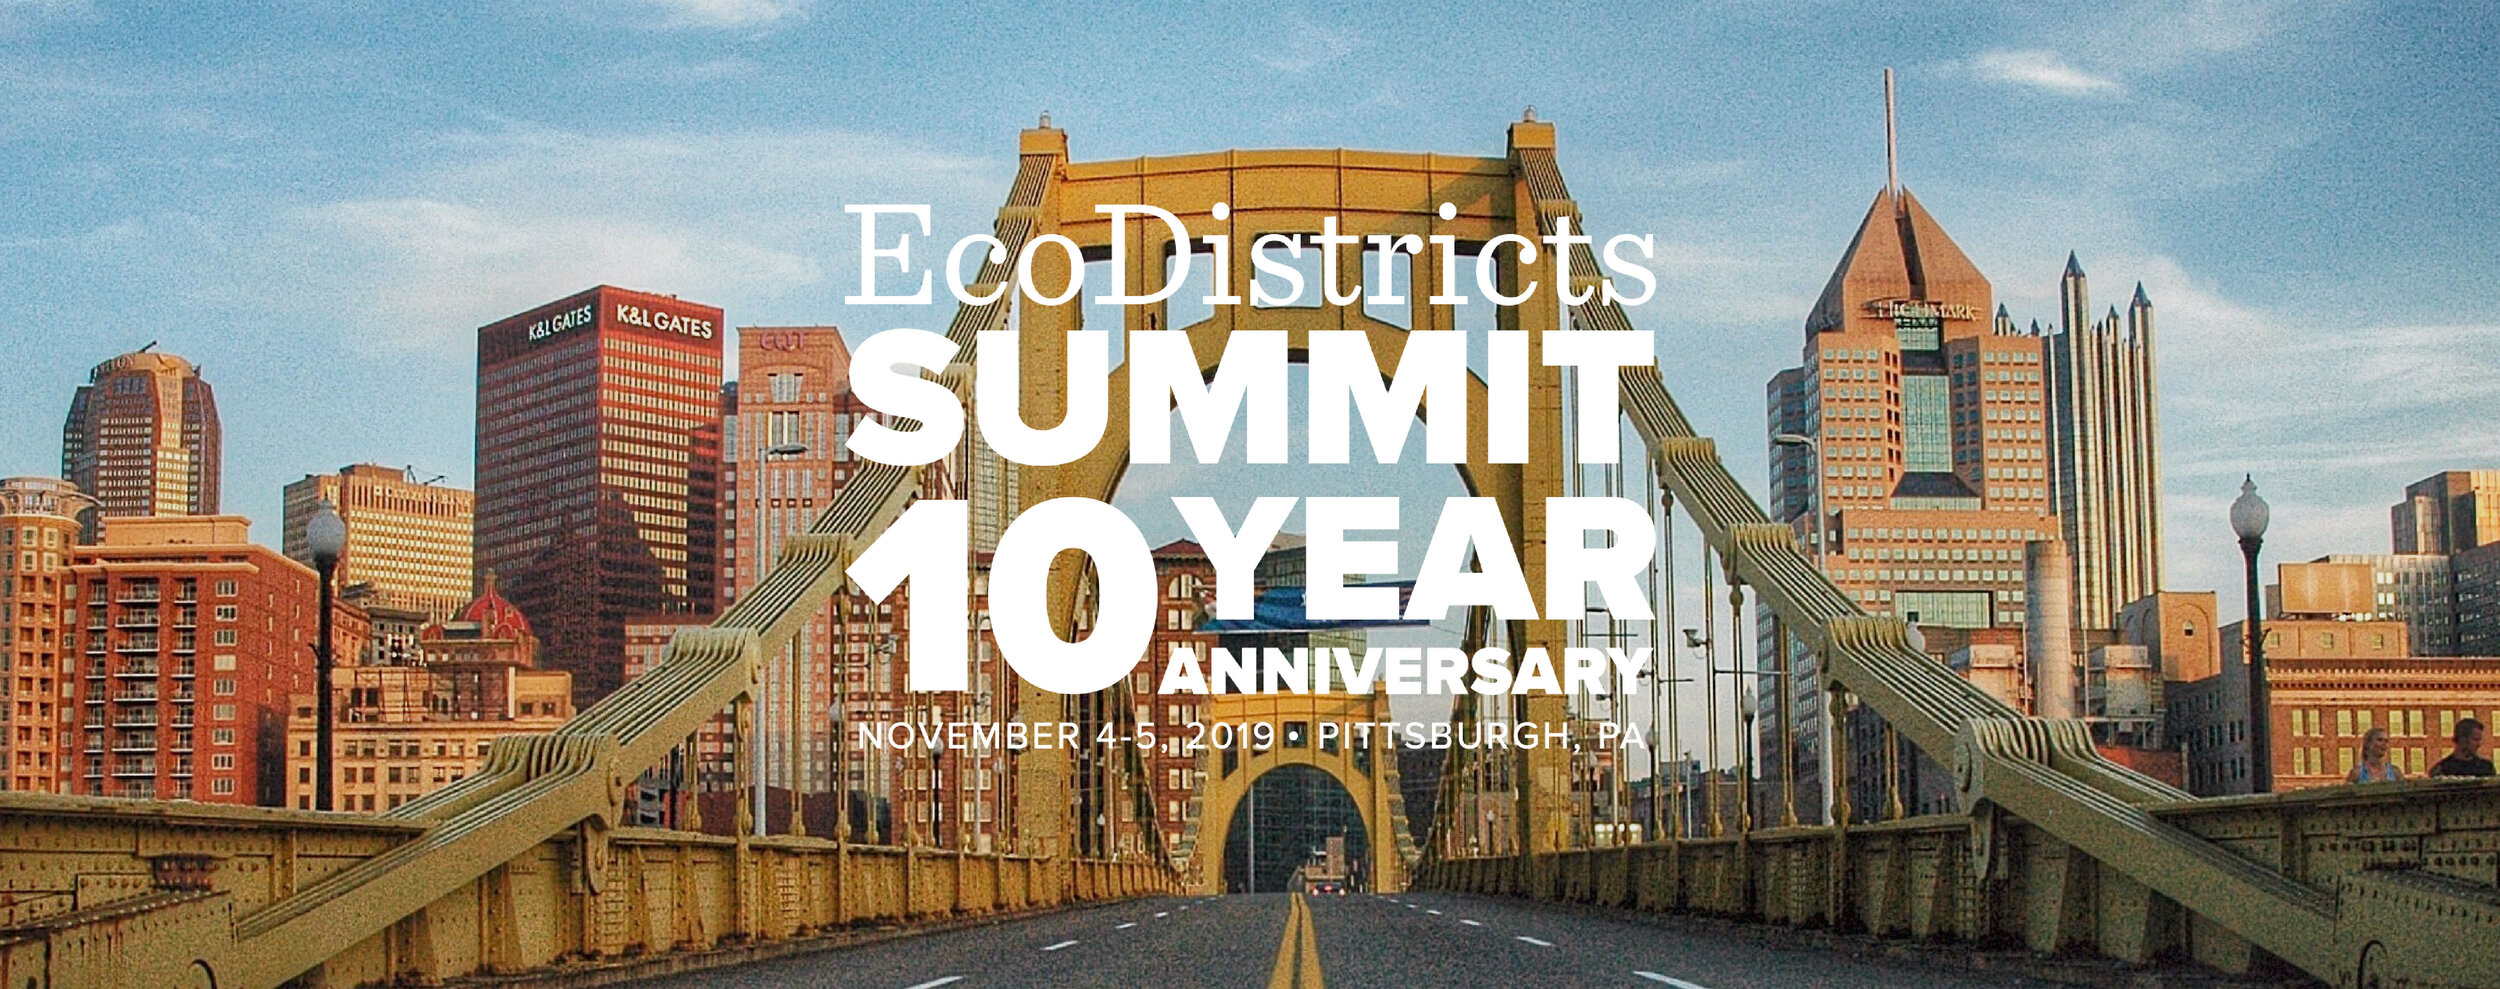 EcoDistrict Summit.jpg